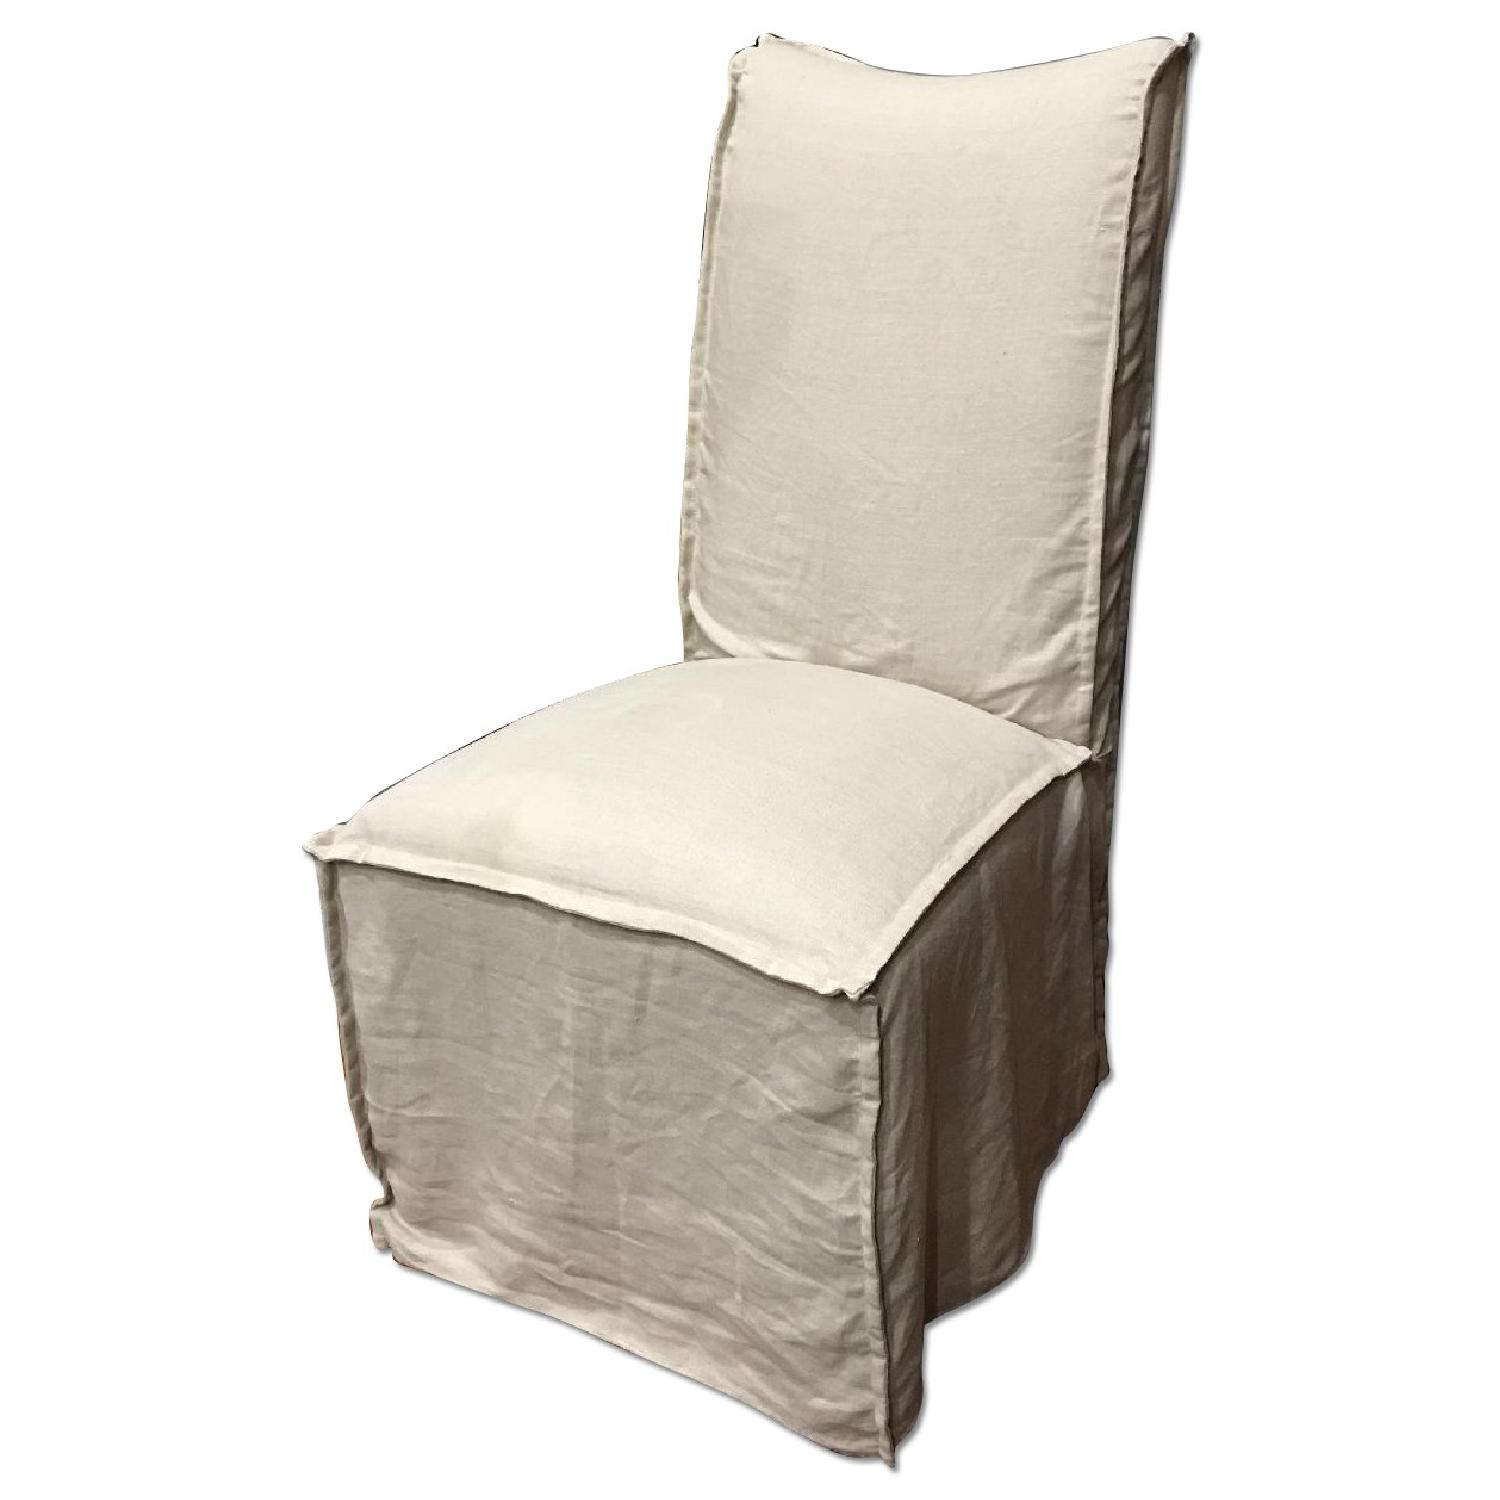 Lee Industries Slip-Covered Dining Chairs - image-0